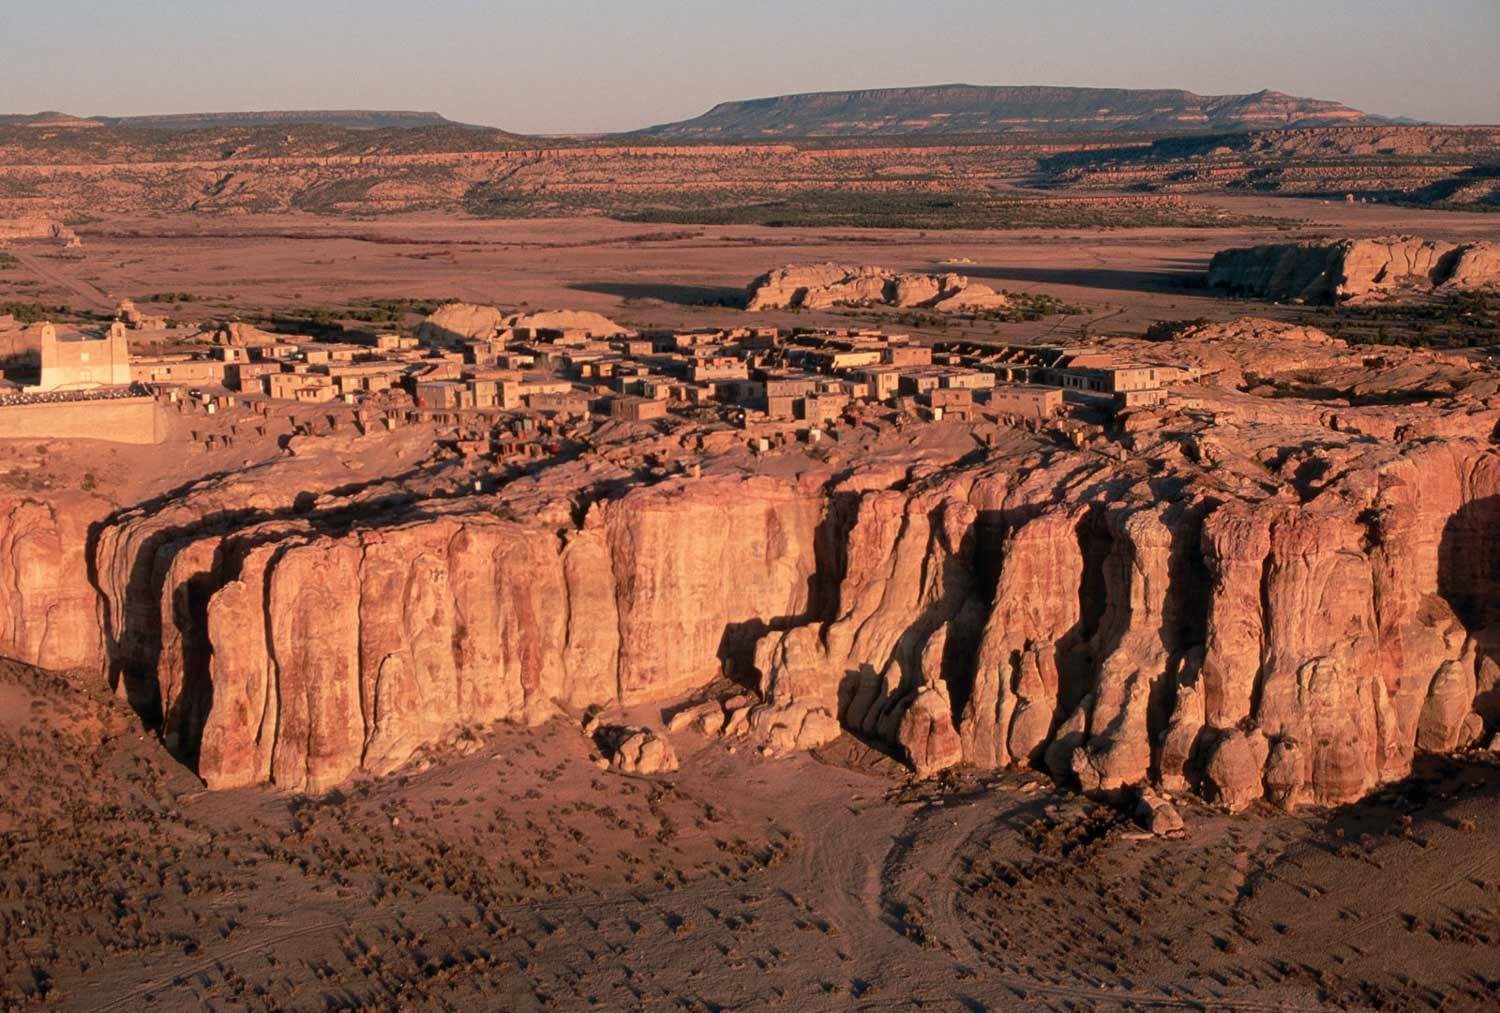 Richard Frost: Acoma Pueblo battles for control of its own story